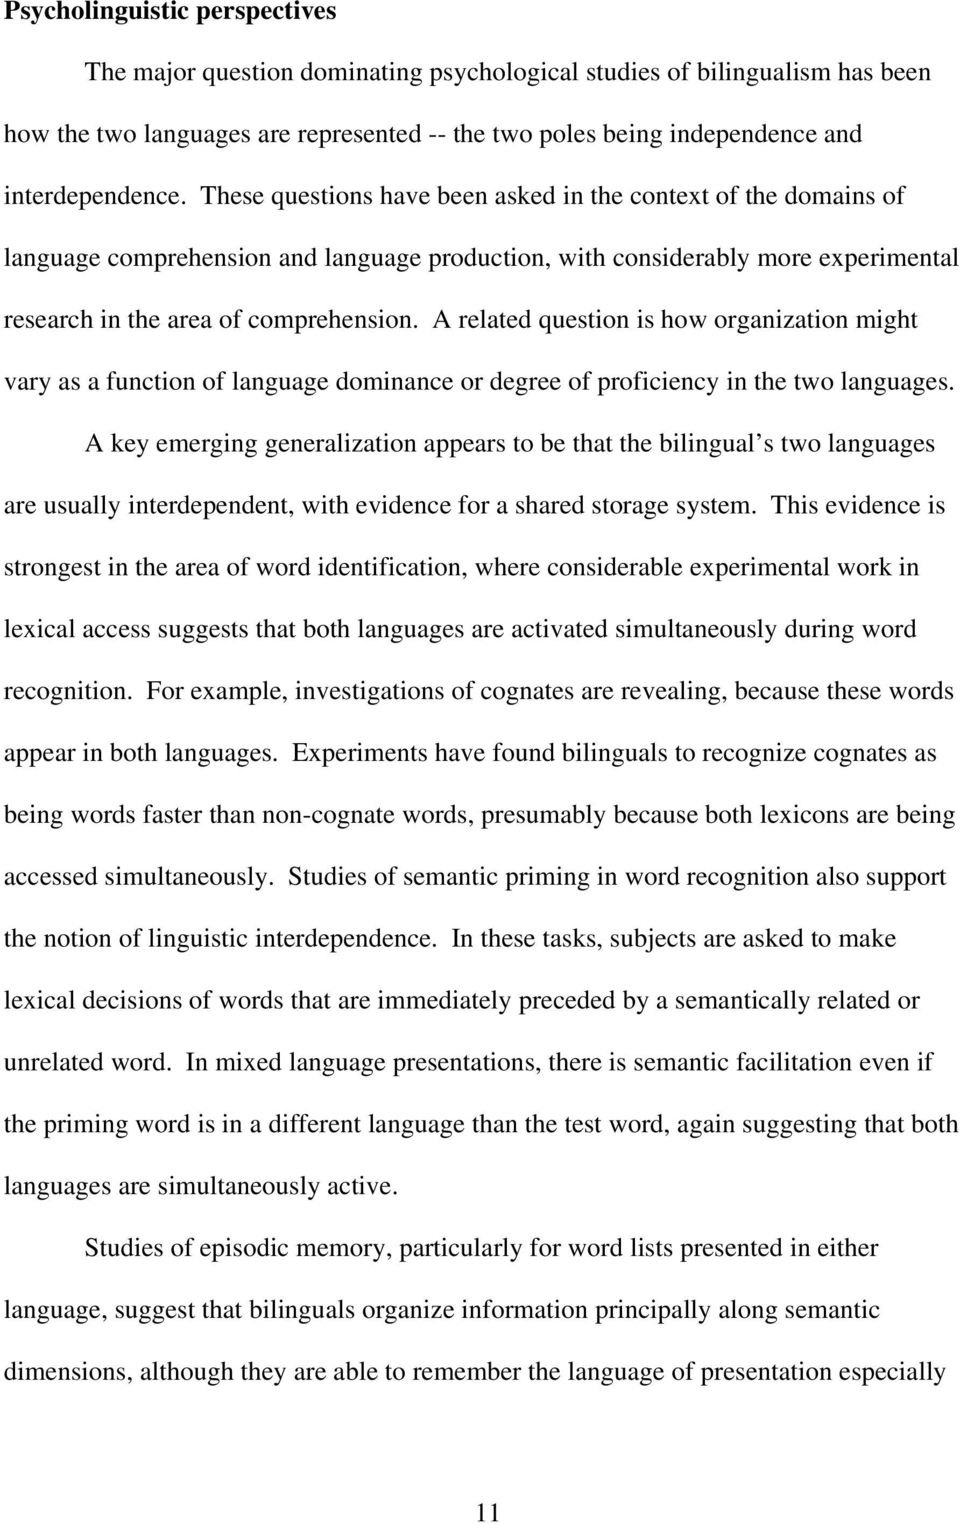 These questions have been asked in the context of the domains of language comprehension and language production, with considerably more experimental research in the area of comprehension.